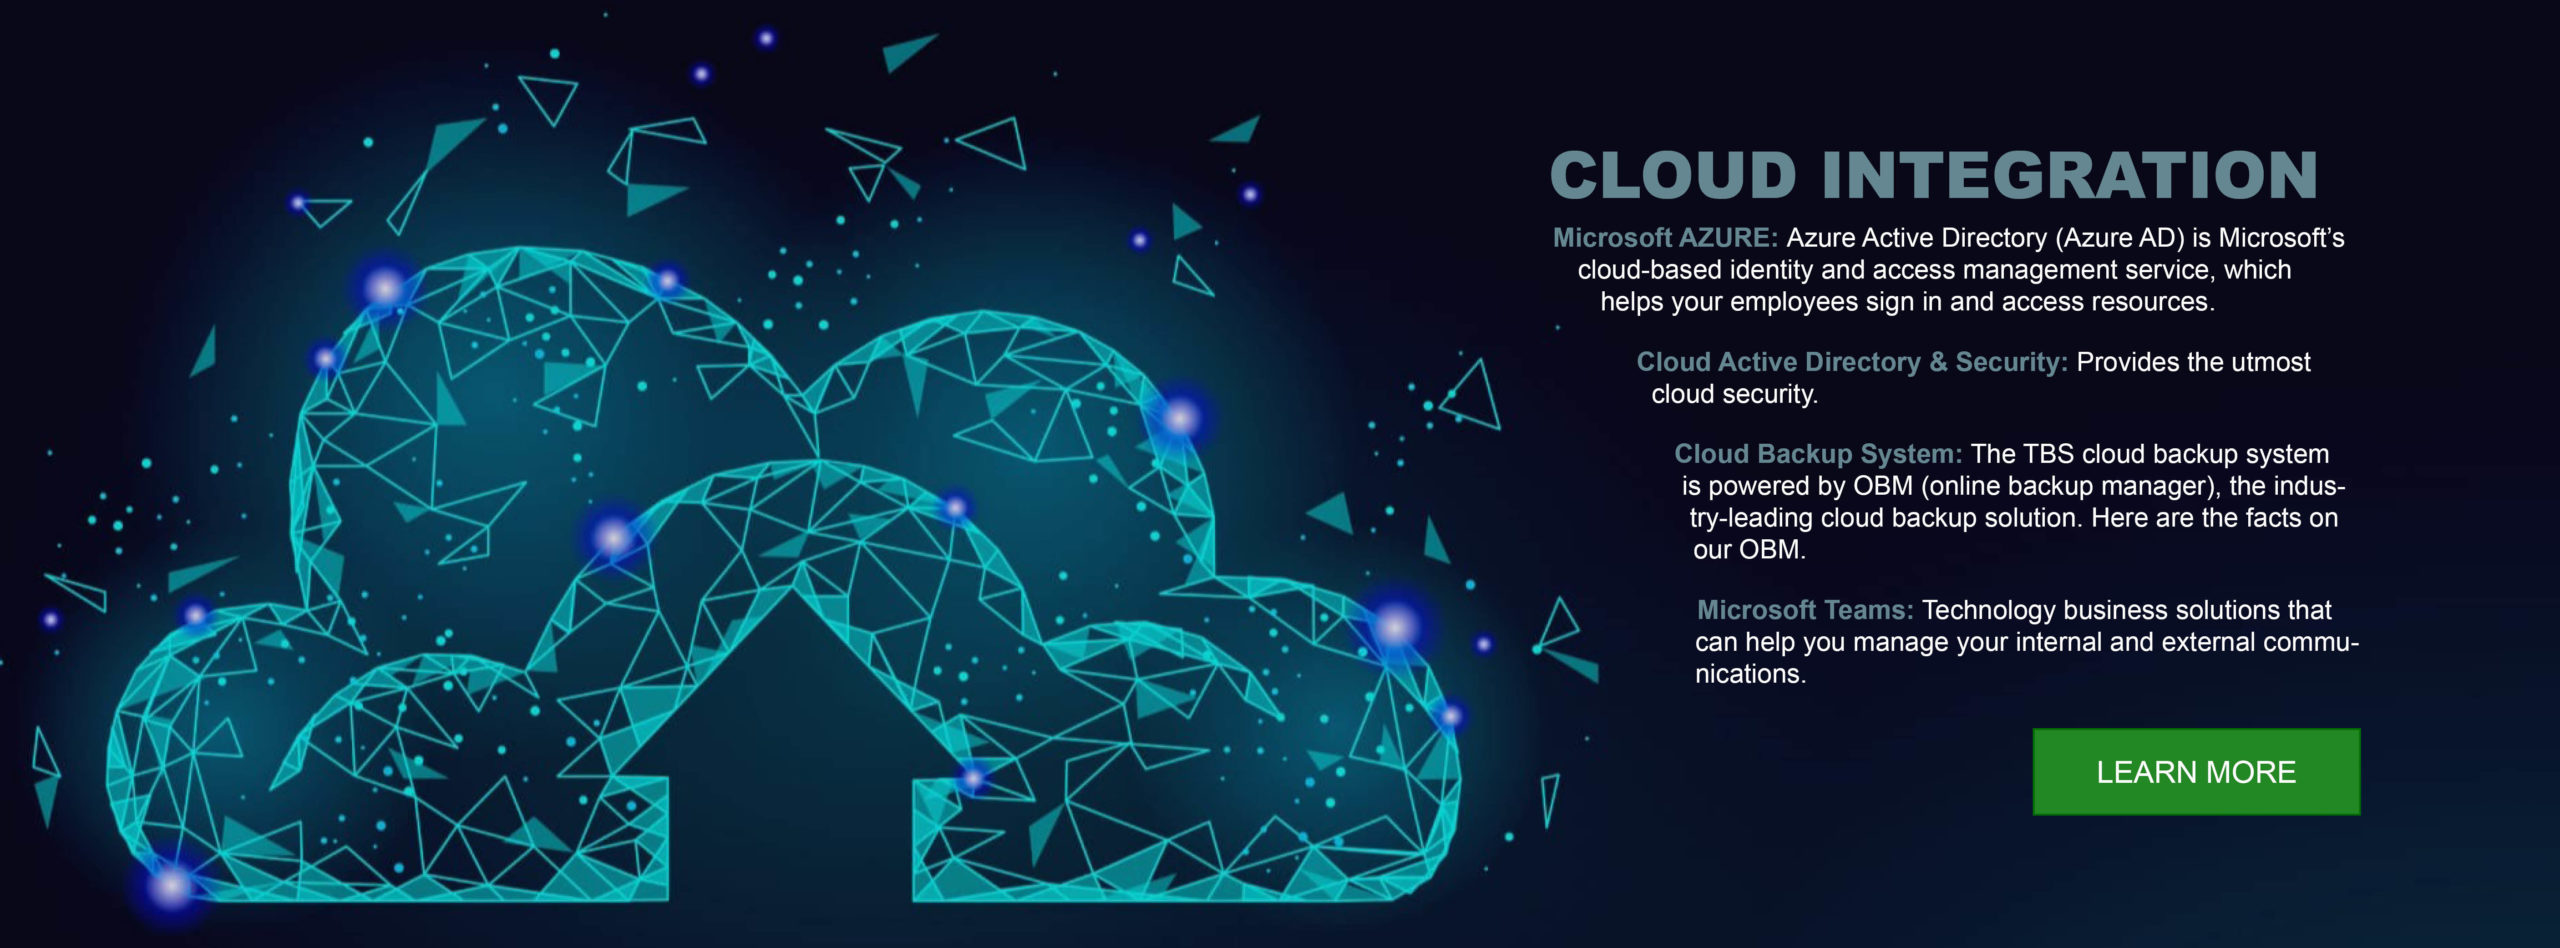 managed services cloud integration banner #2